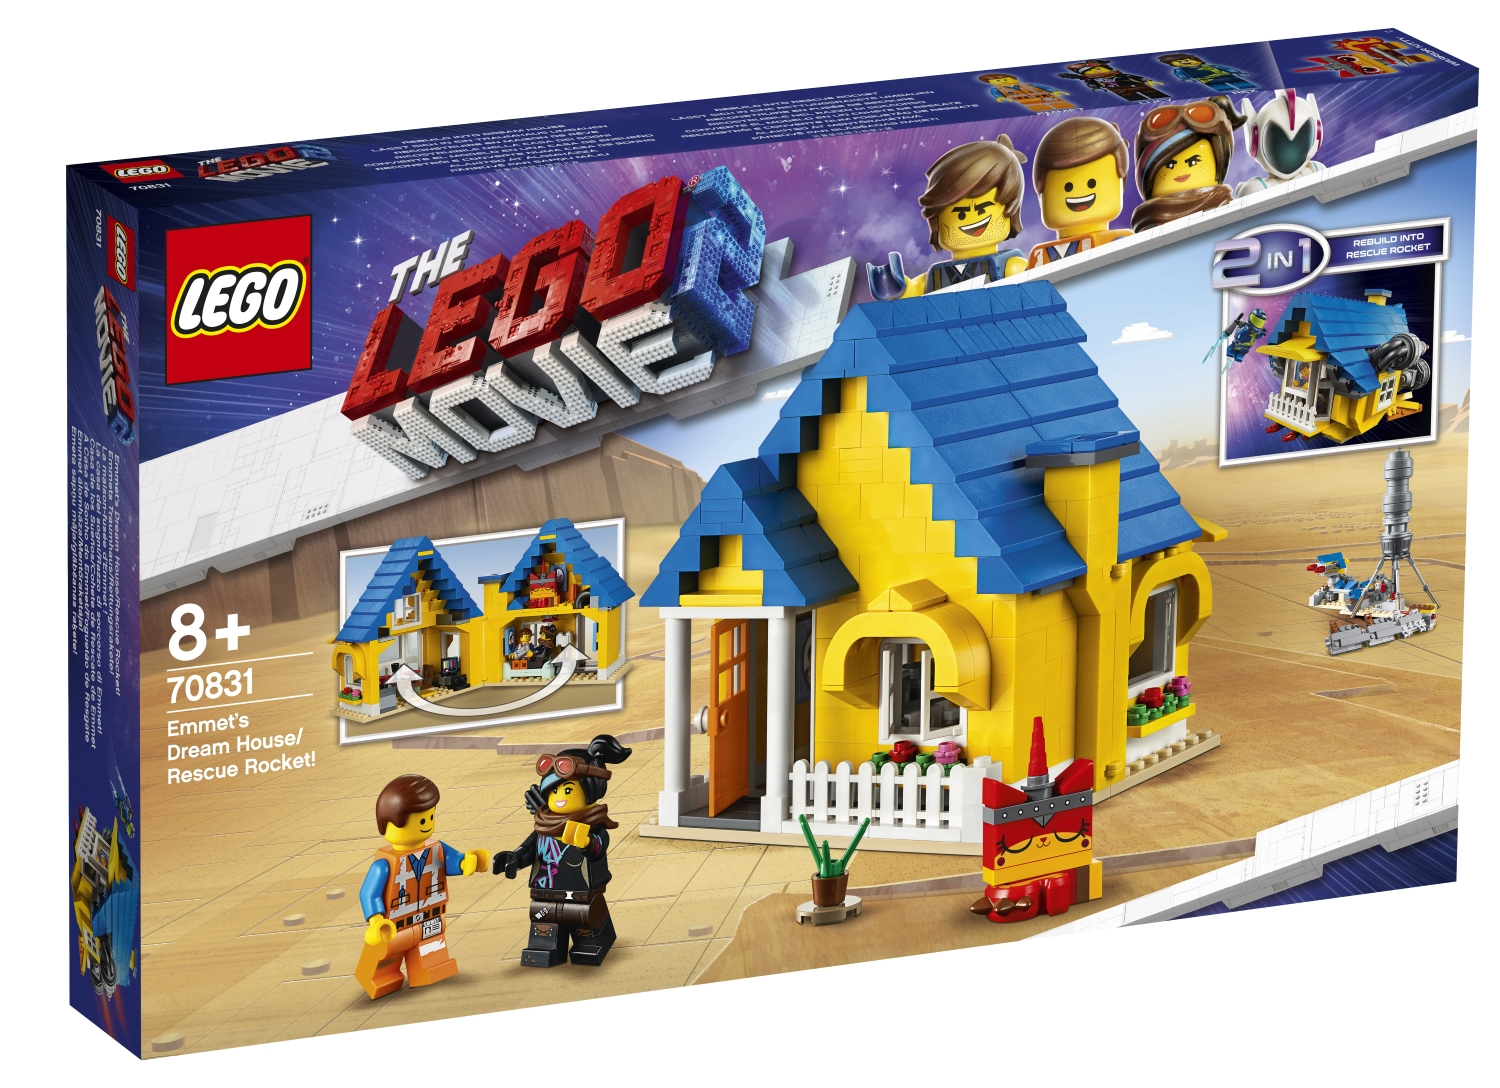 First Lego Movie 2: The Second Part toys sets revealed